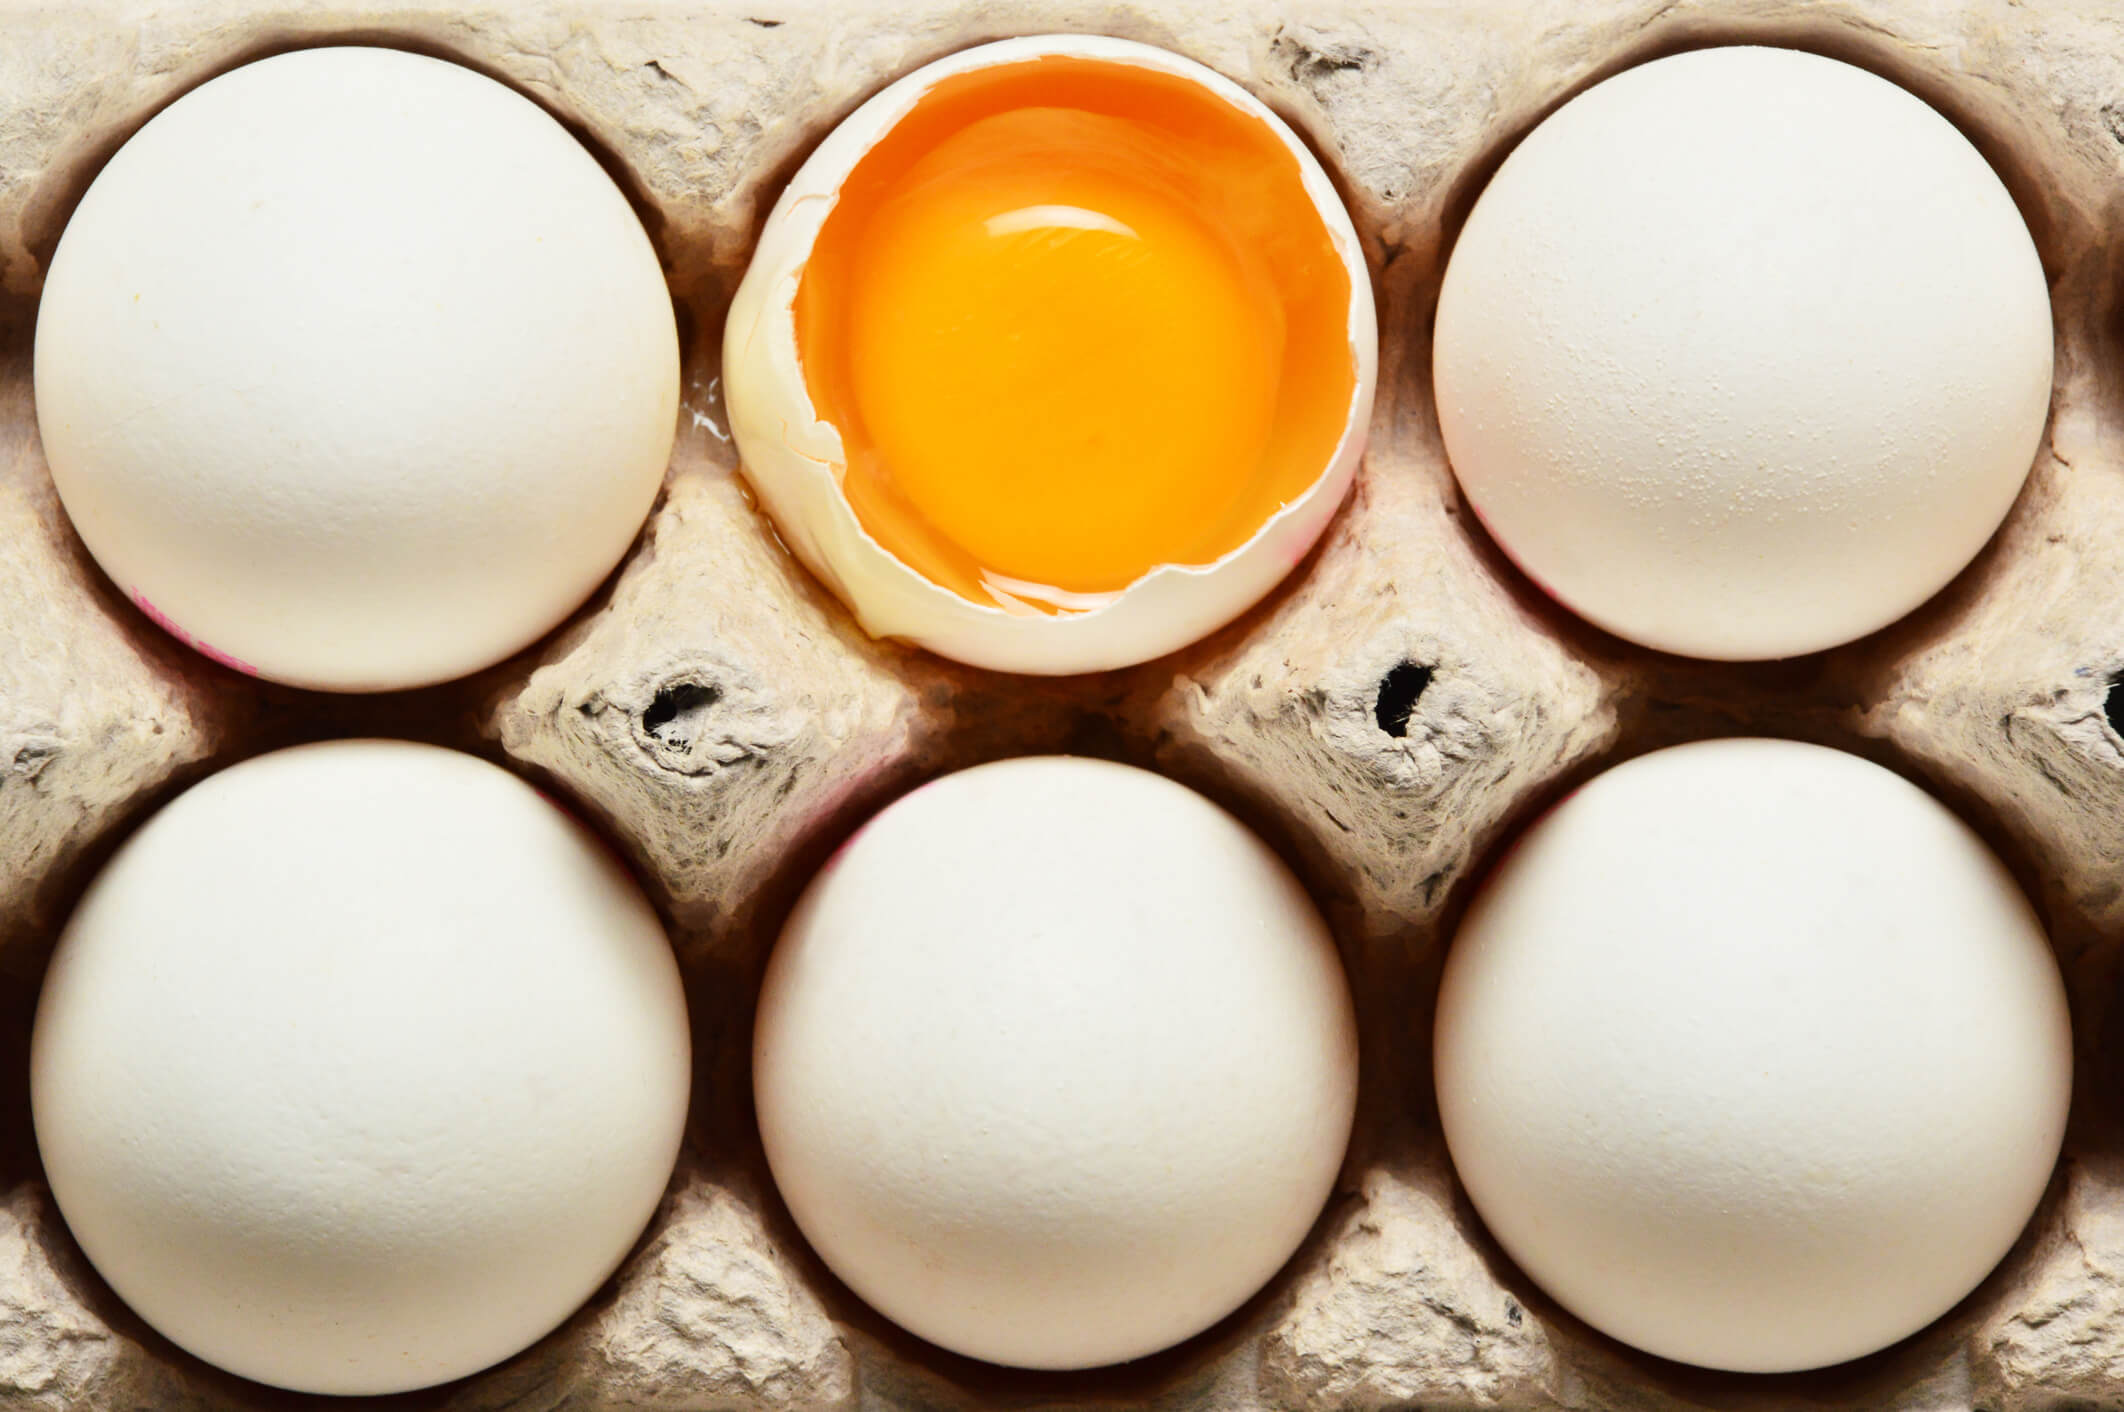 Paleo diet and eggs